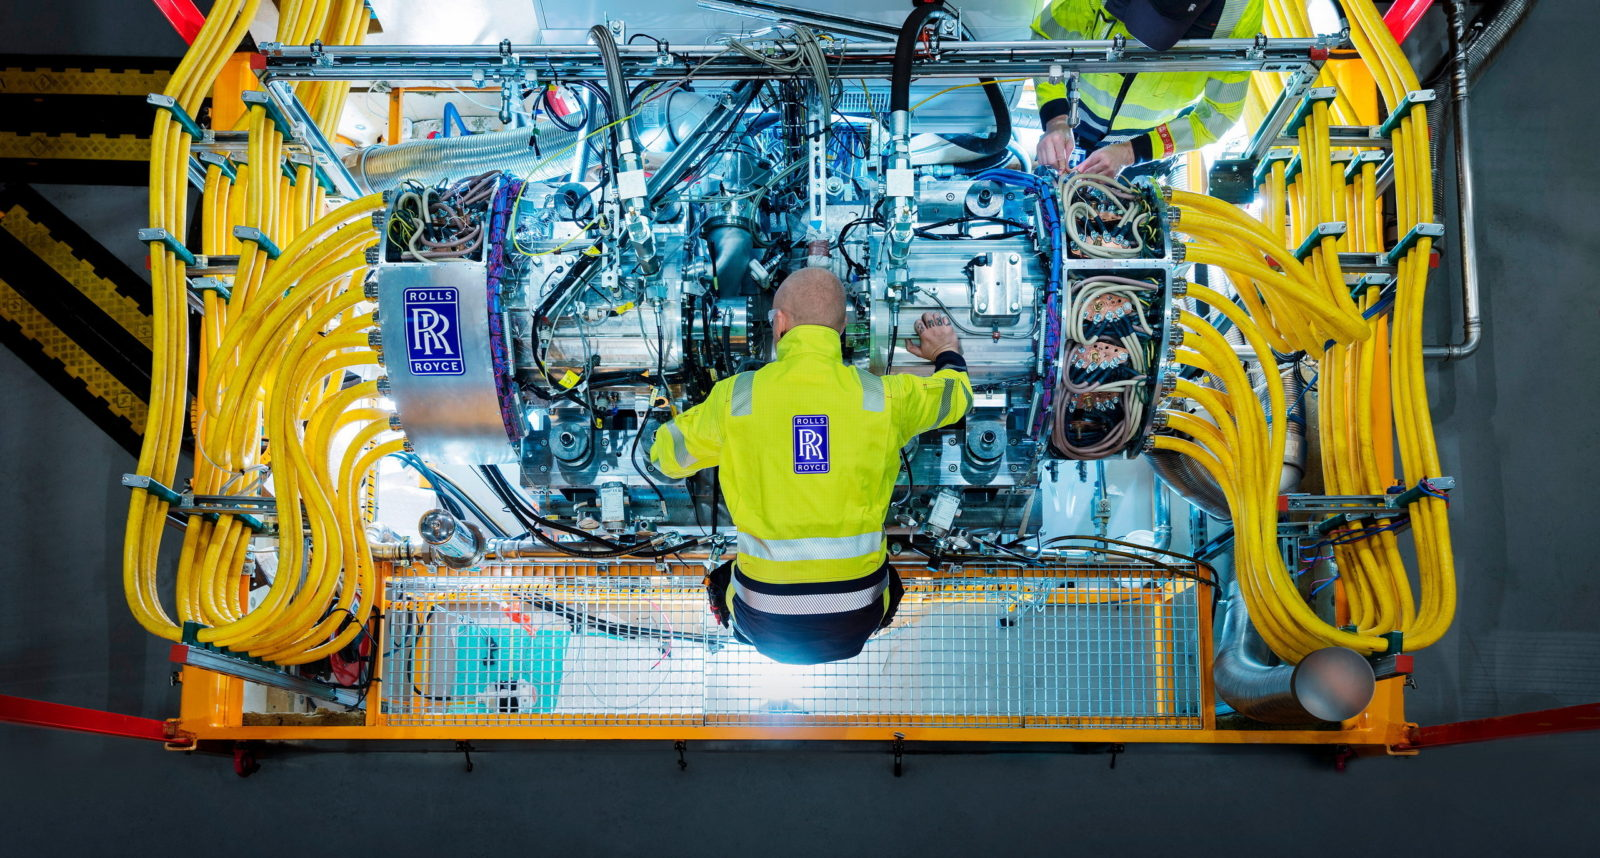 rolls-royce-completes-generator-tests-for-hybrid-electric-propulsion-system